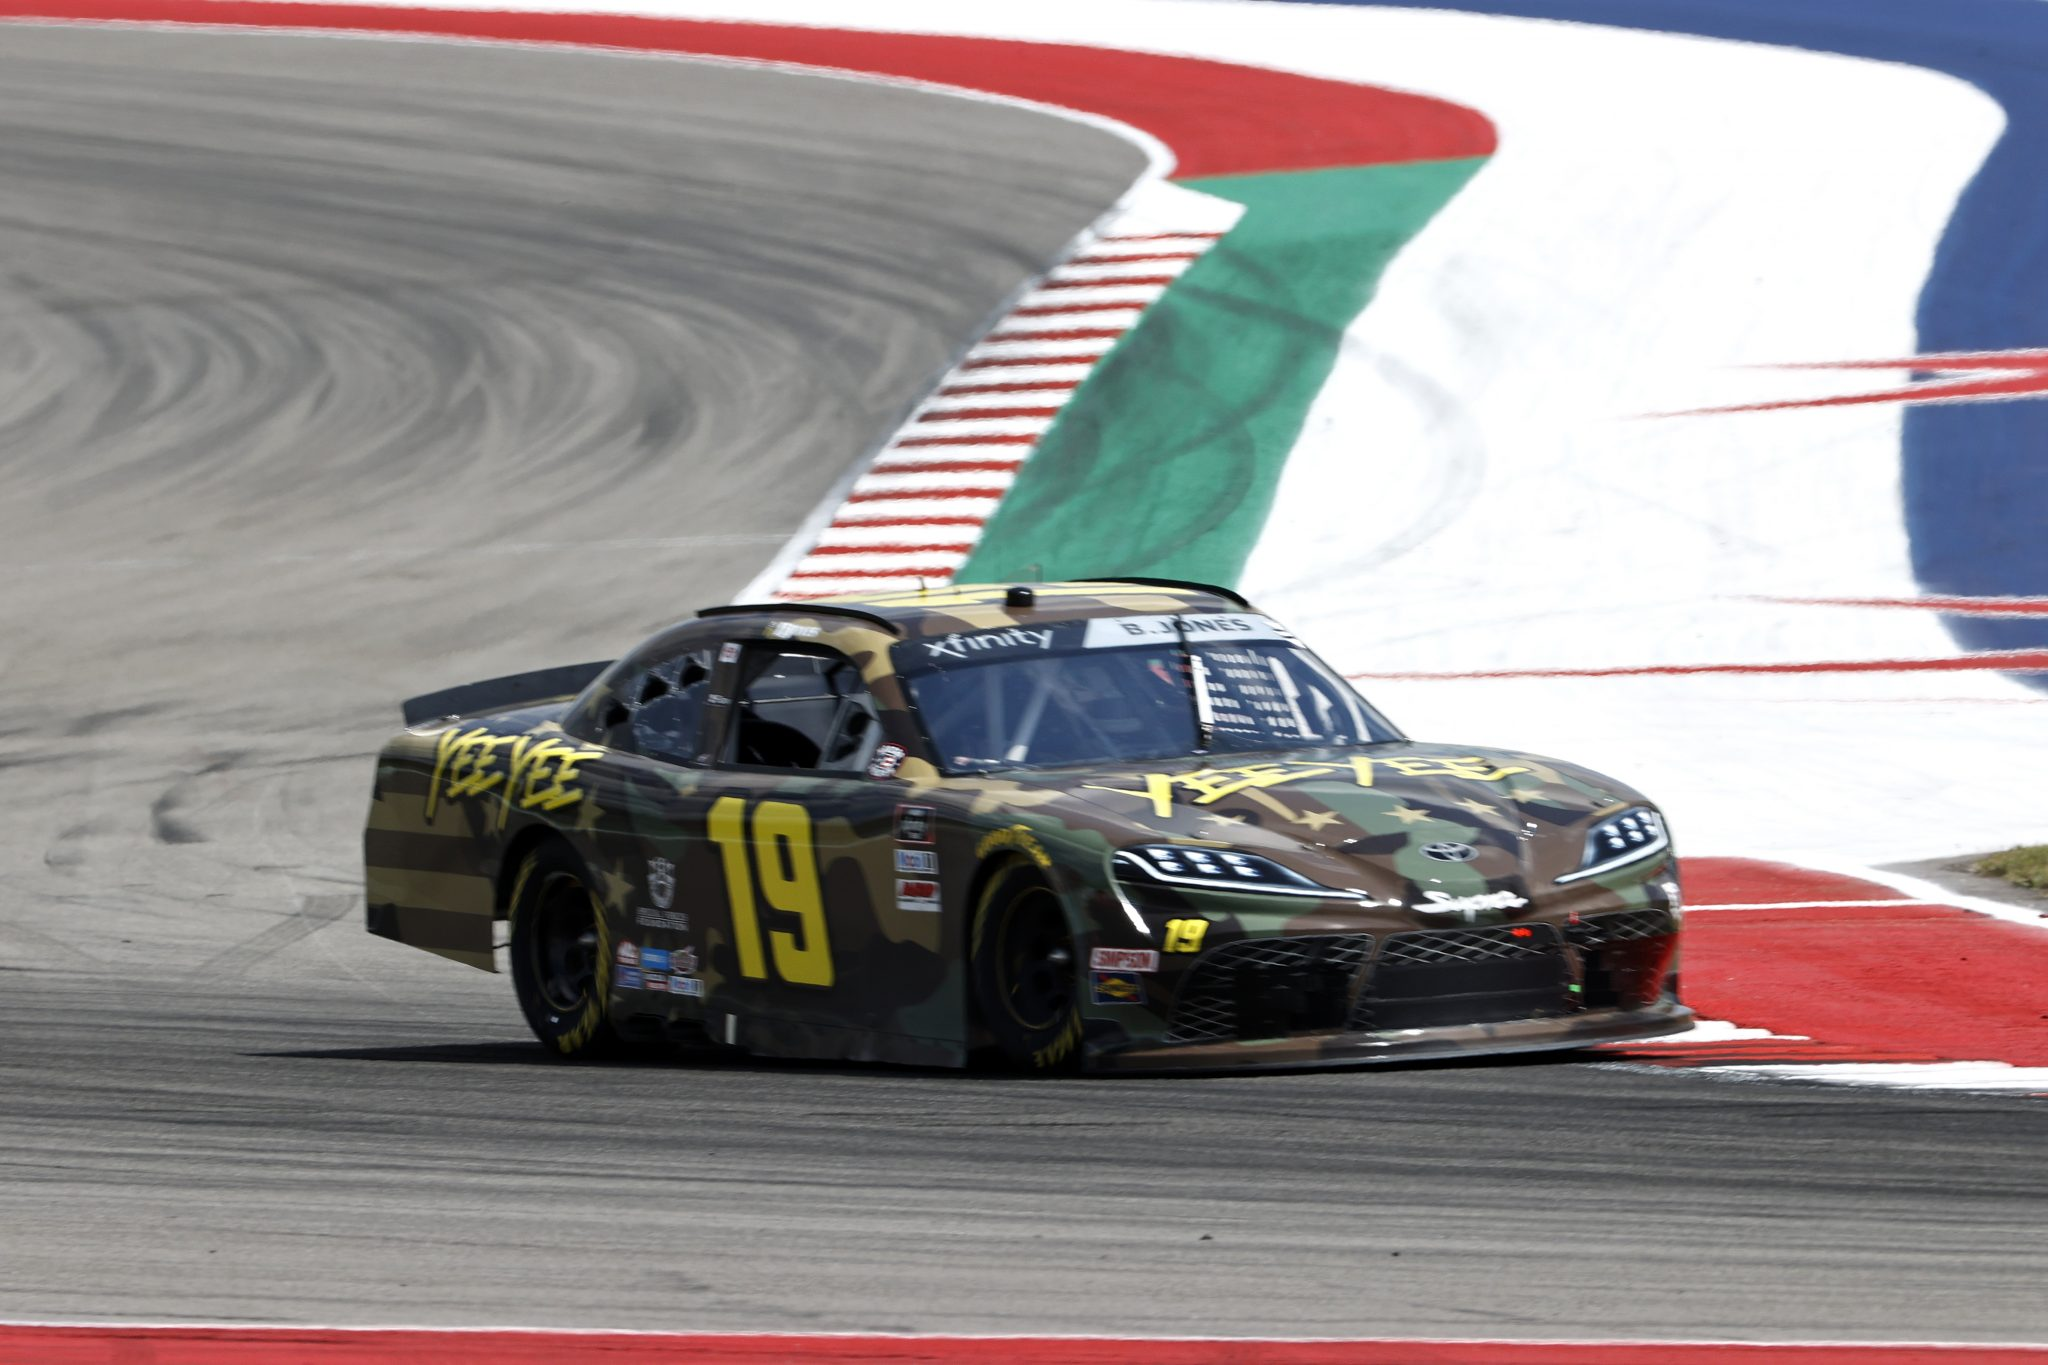 AUSTIN, TEXAS - MAY 21: Brandon Jones, driver of the #19 YeeYee Toyota, drives during practice for the NASCAR Xfinity Series Pit Boss 250 at Circuit of The Americas on May 21, 2021 in Austin, Texas. (Photo by Chris Graythen/Getty Images) | Getty Images